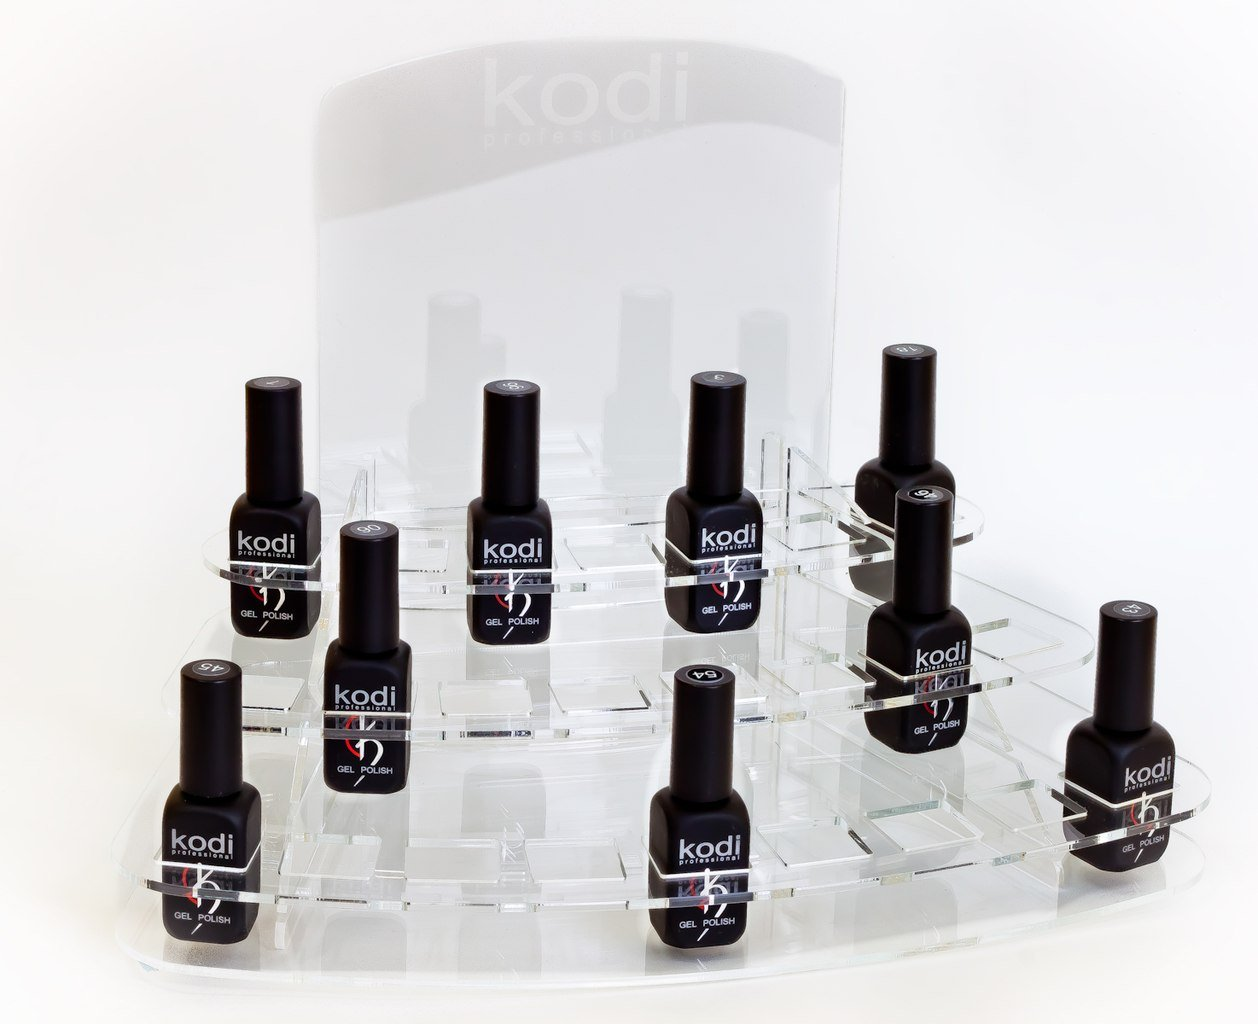 Amazon.com: Kodi Professional Nail Polish Rubber Base Coat Soak Off ...